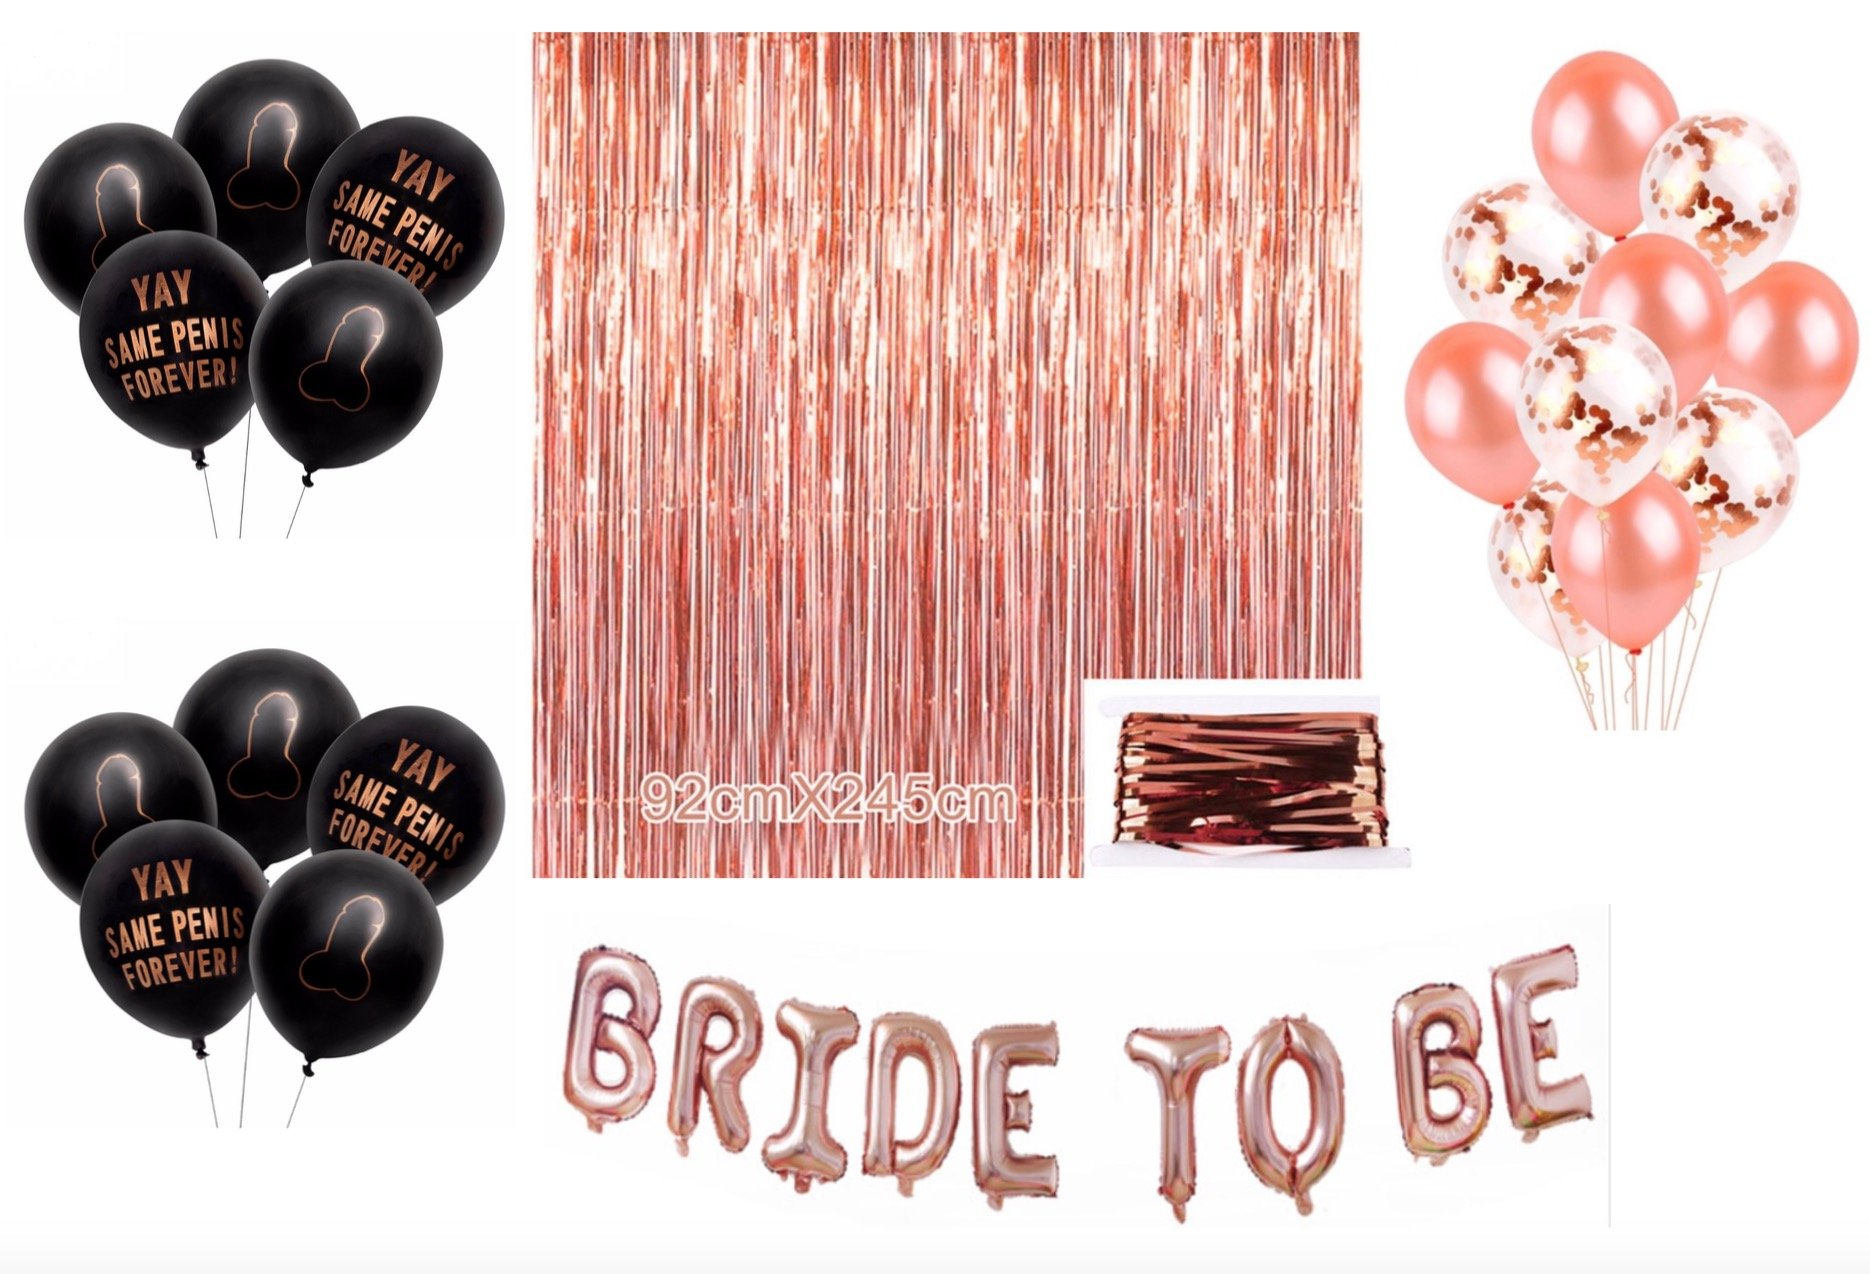 Bachelorette Party Decorations and Supplies Kit Rose Gold – Set includes 1 Fringe Curtain, 10 White and Pink Confetti Balloons, 10 Same Penis Forever Black Balloons, Bride to Be Balloon Banner 30 pcs